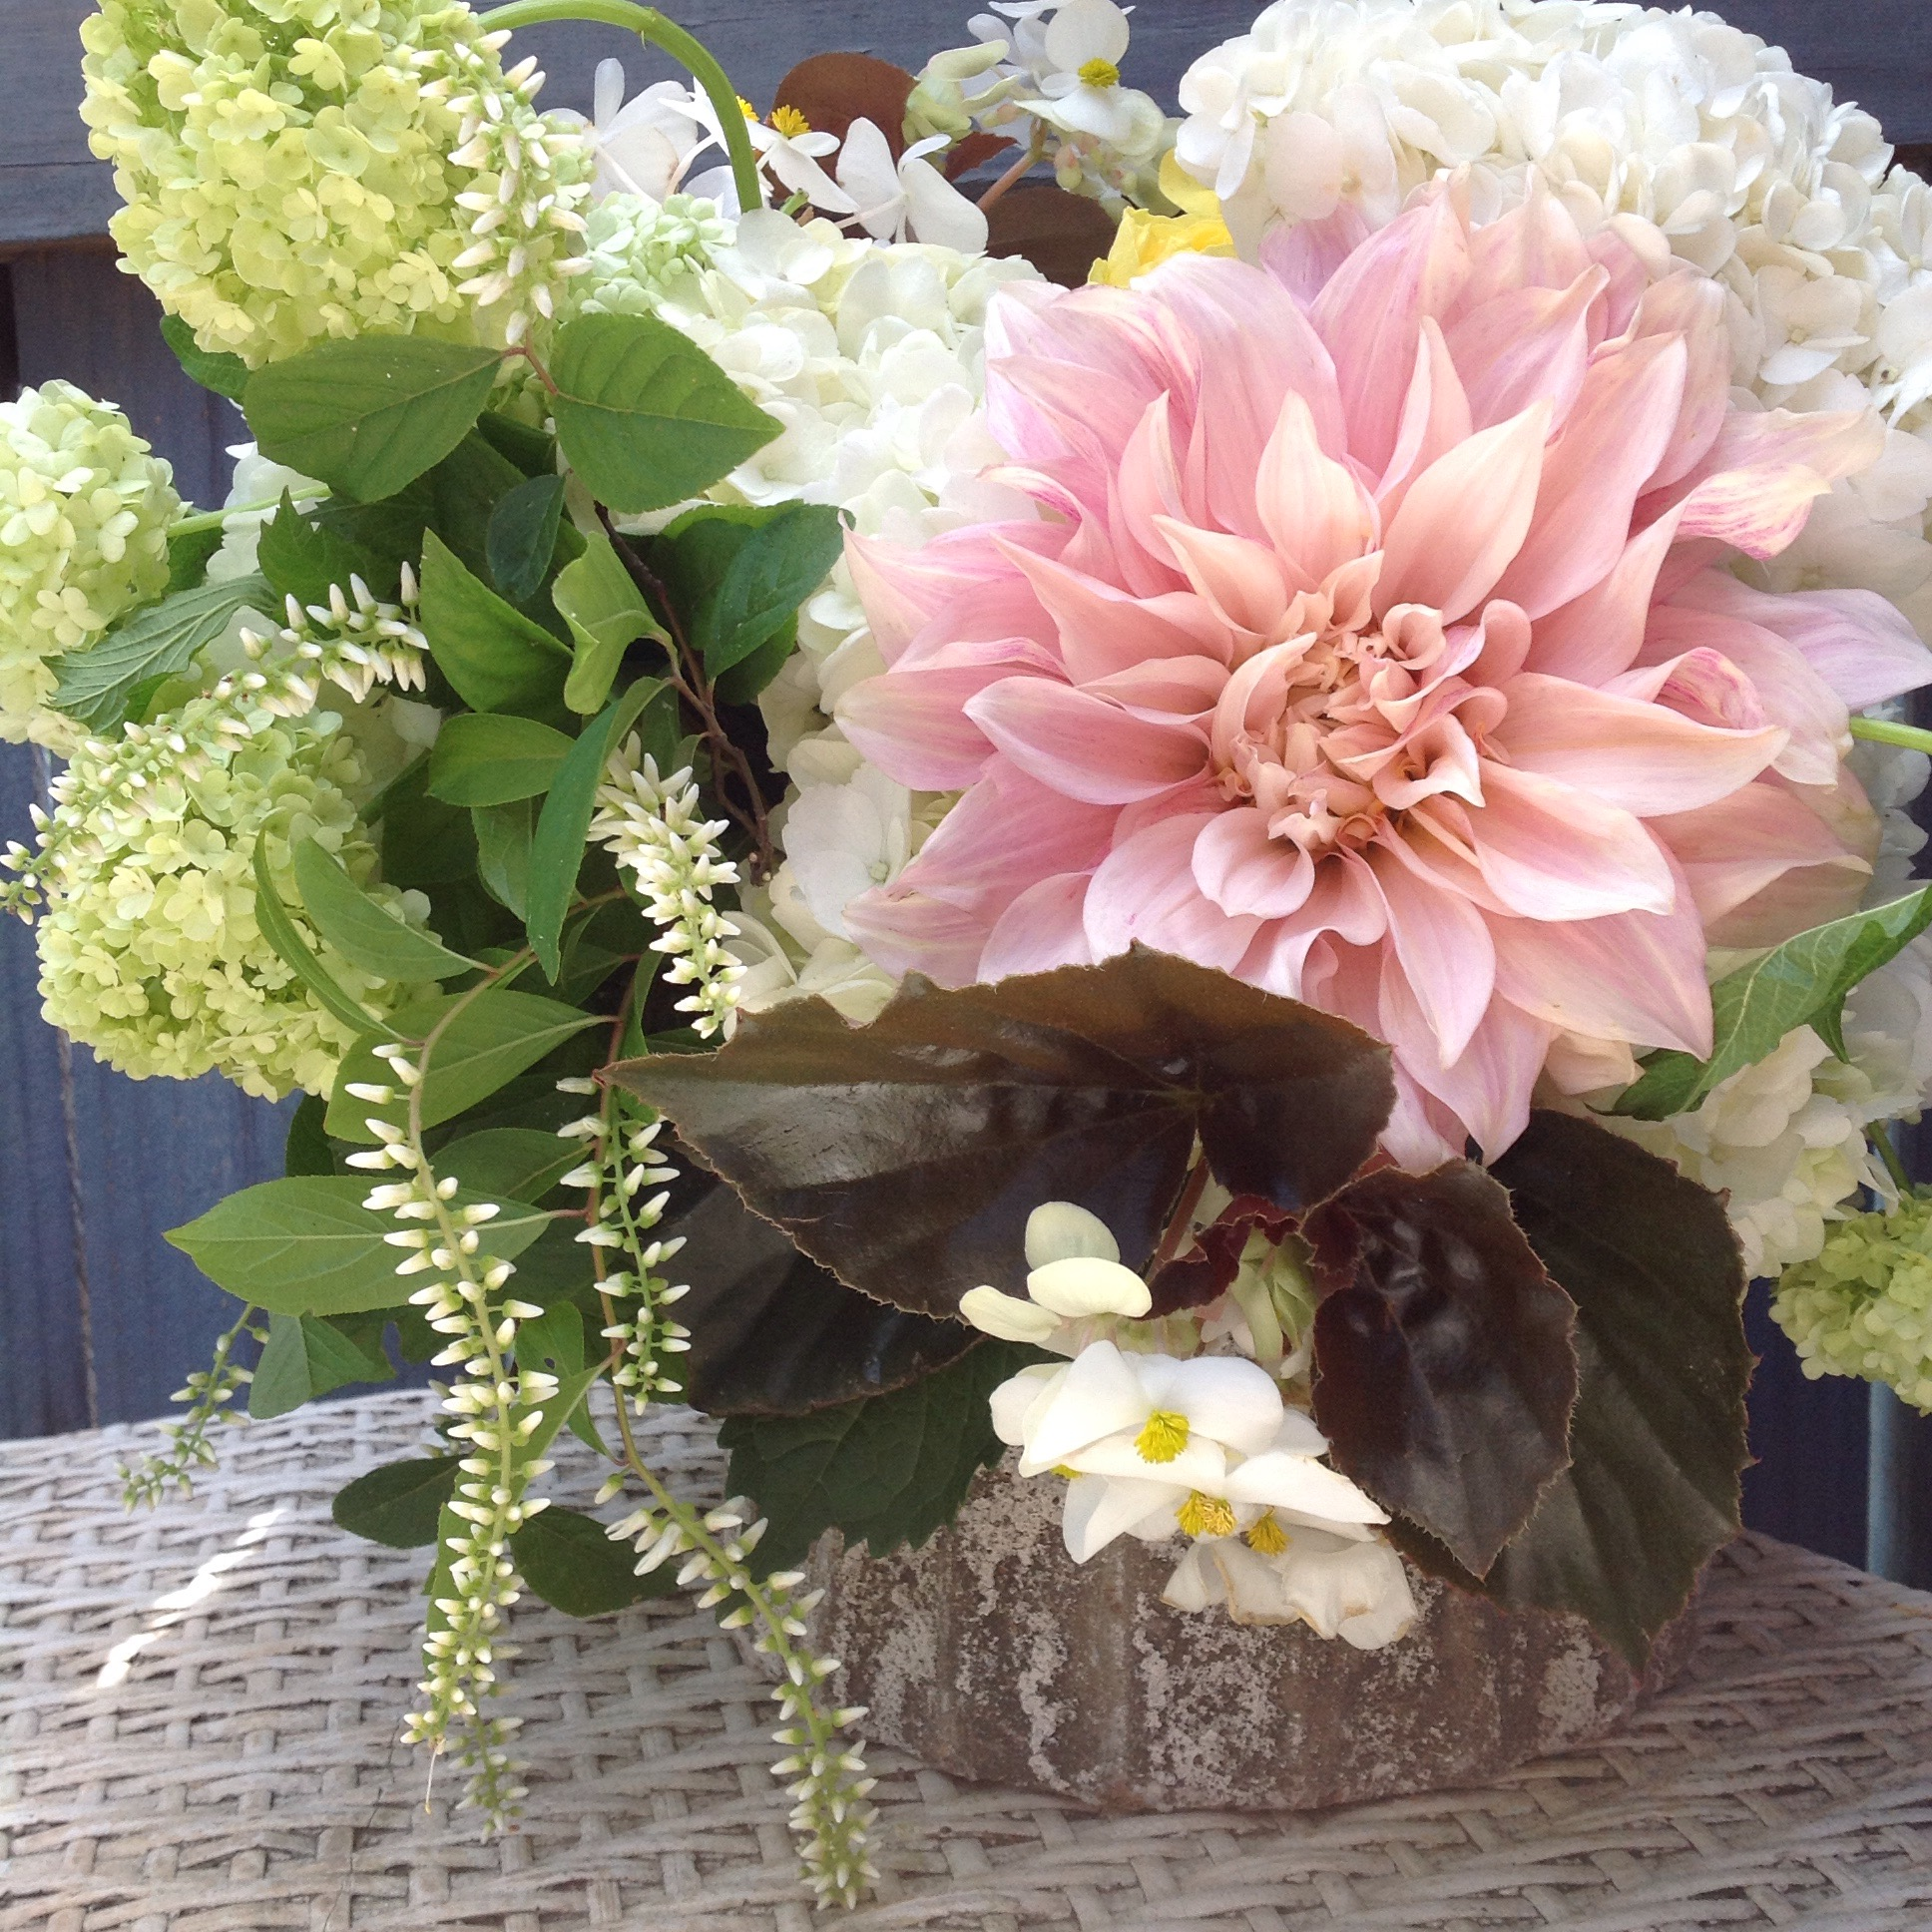 Our Signature mixed arrangements, always a hit starting at $165 ( as shown $165)